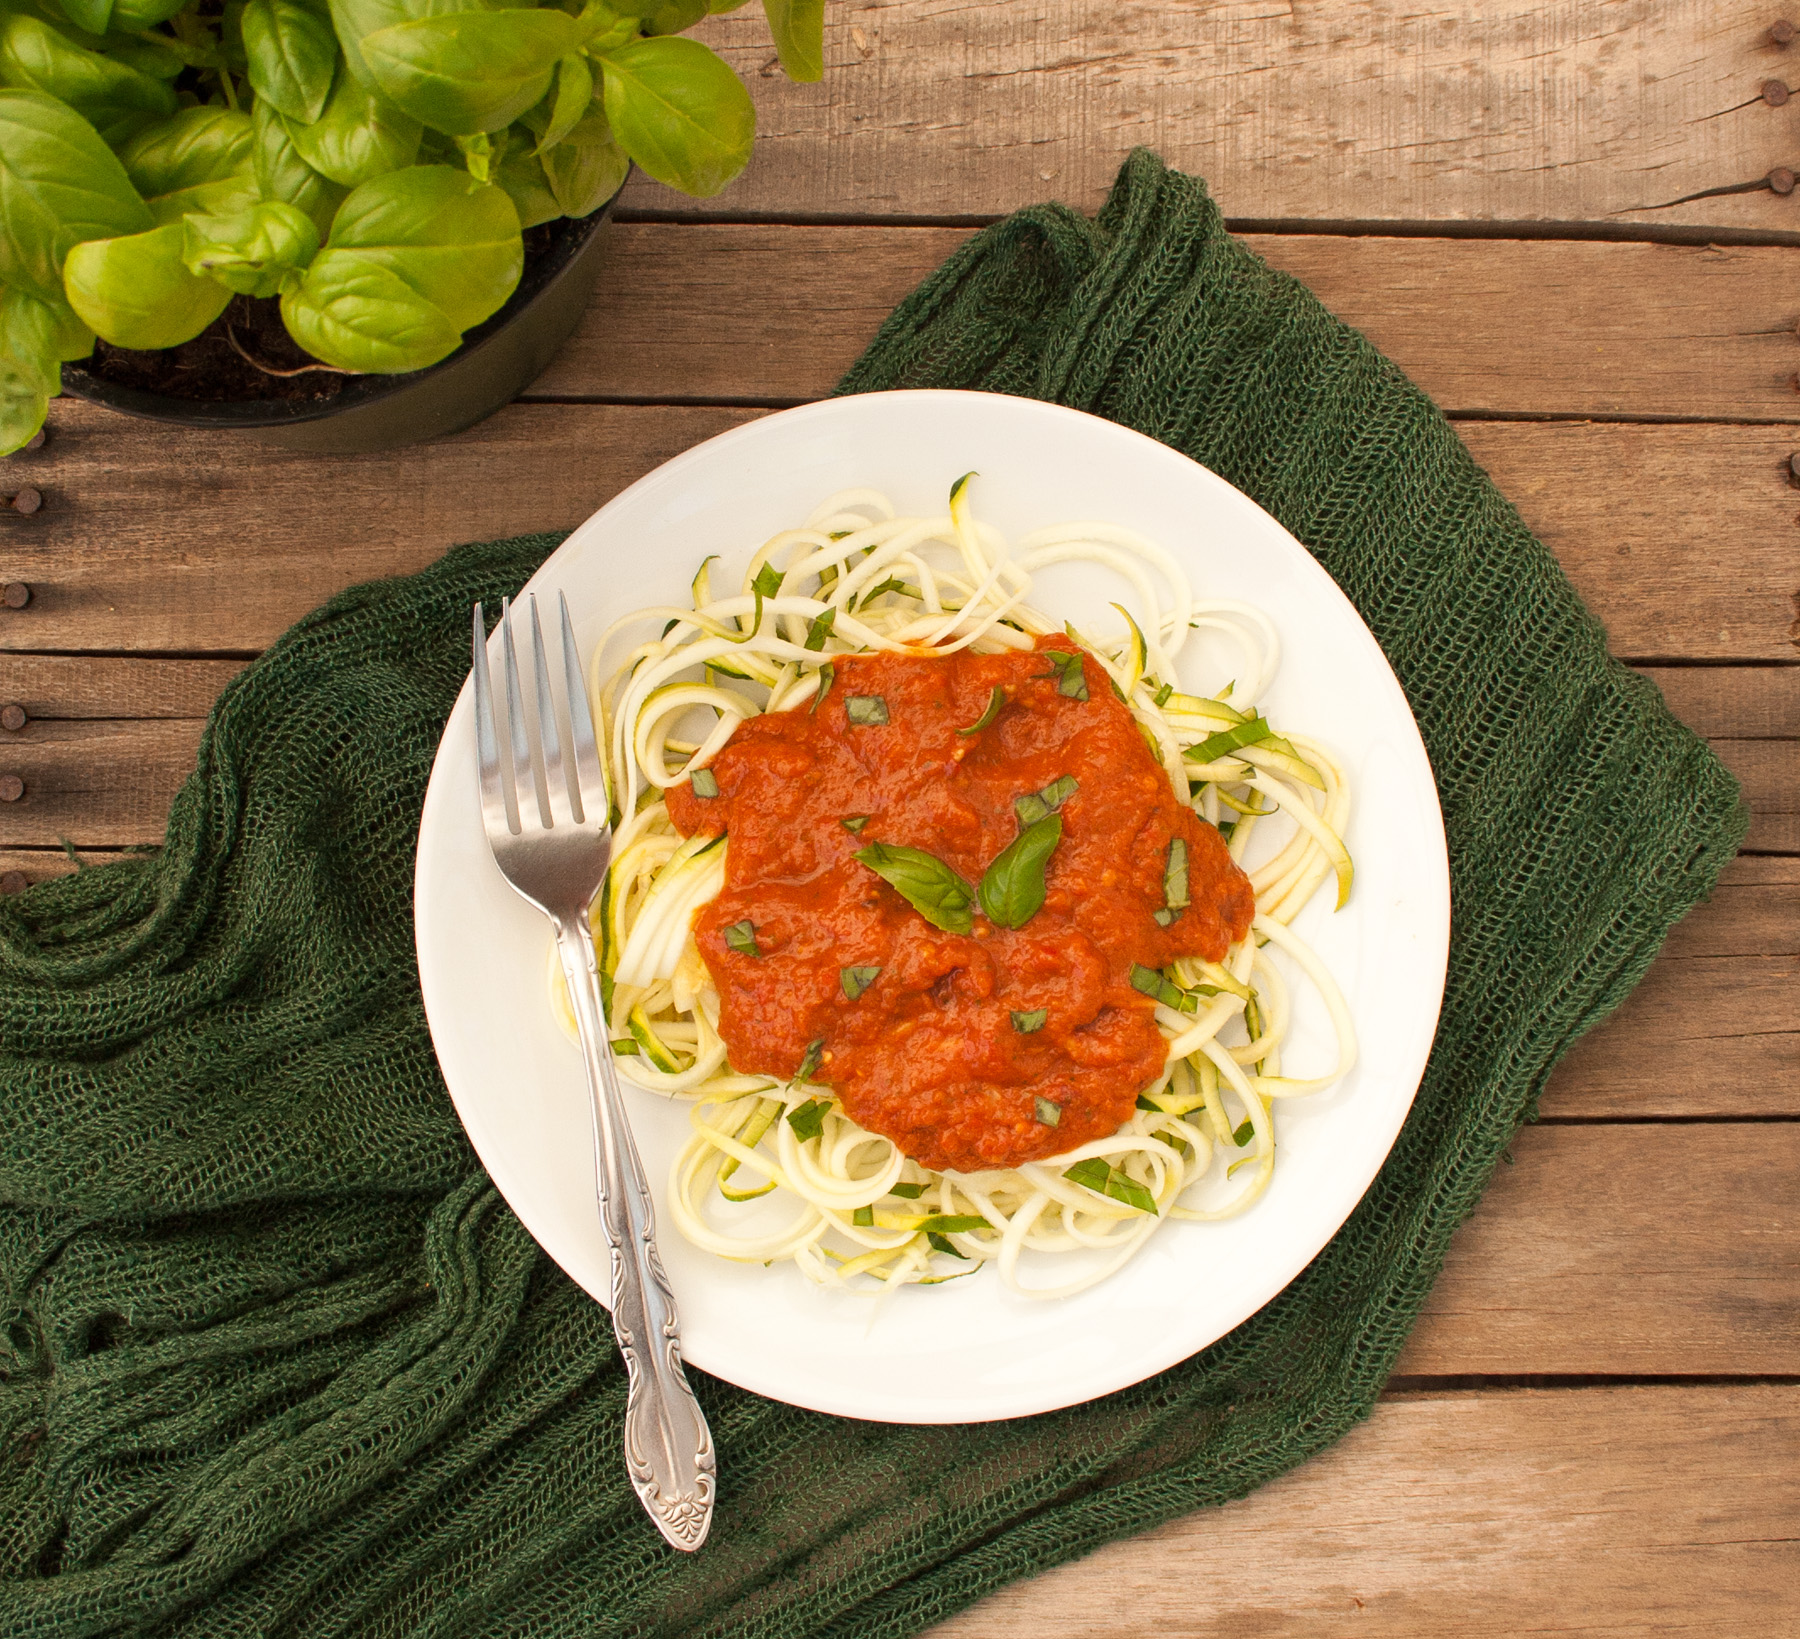 Zucchini Noodles with Raw Red Pepper Sauce birds eye view.